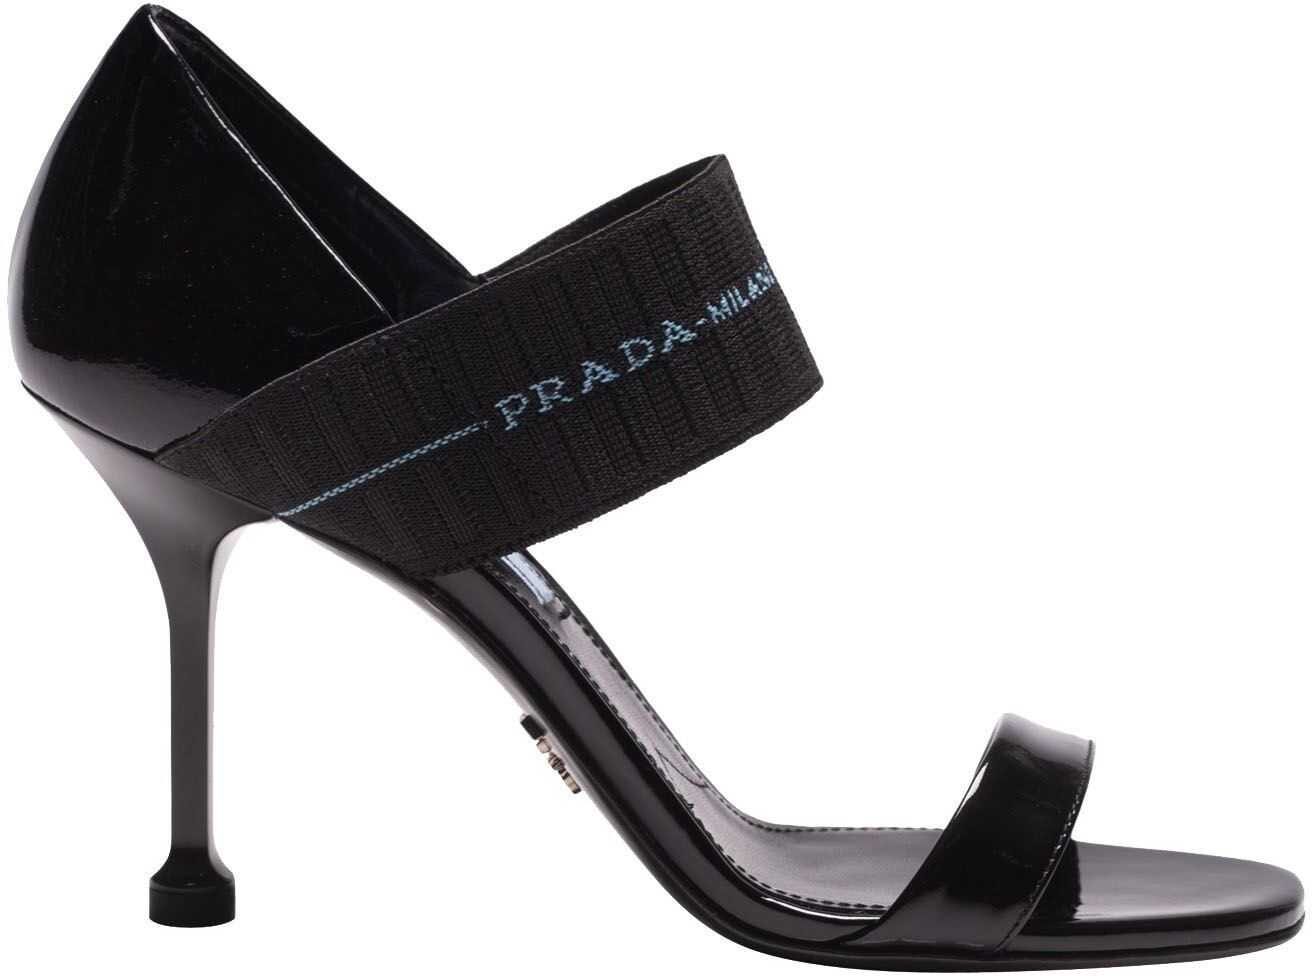 Prada Black Patent Leather Sandals With Elastic Black